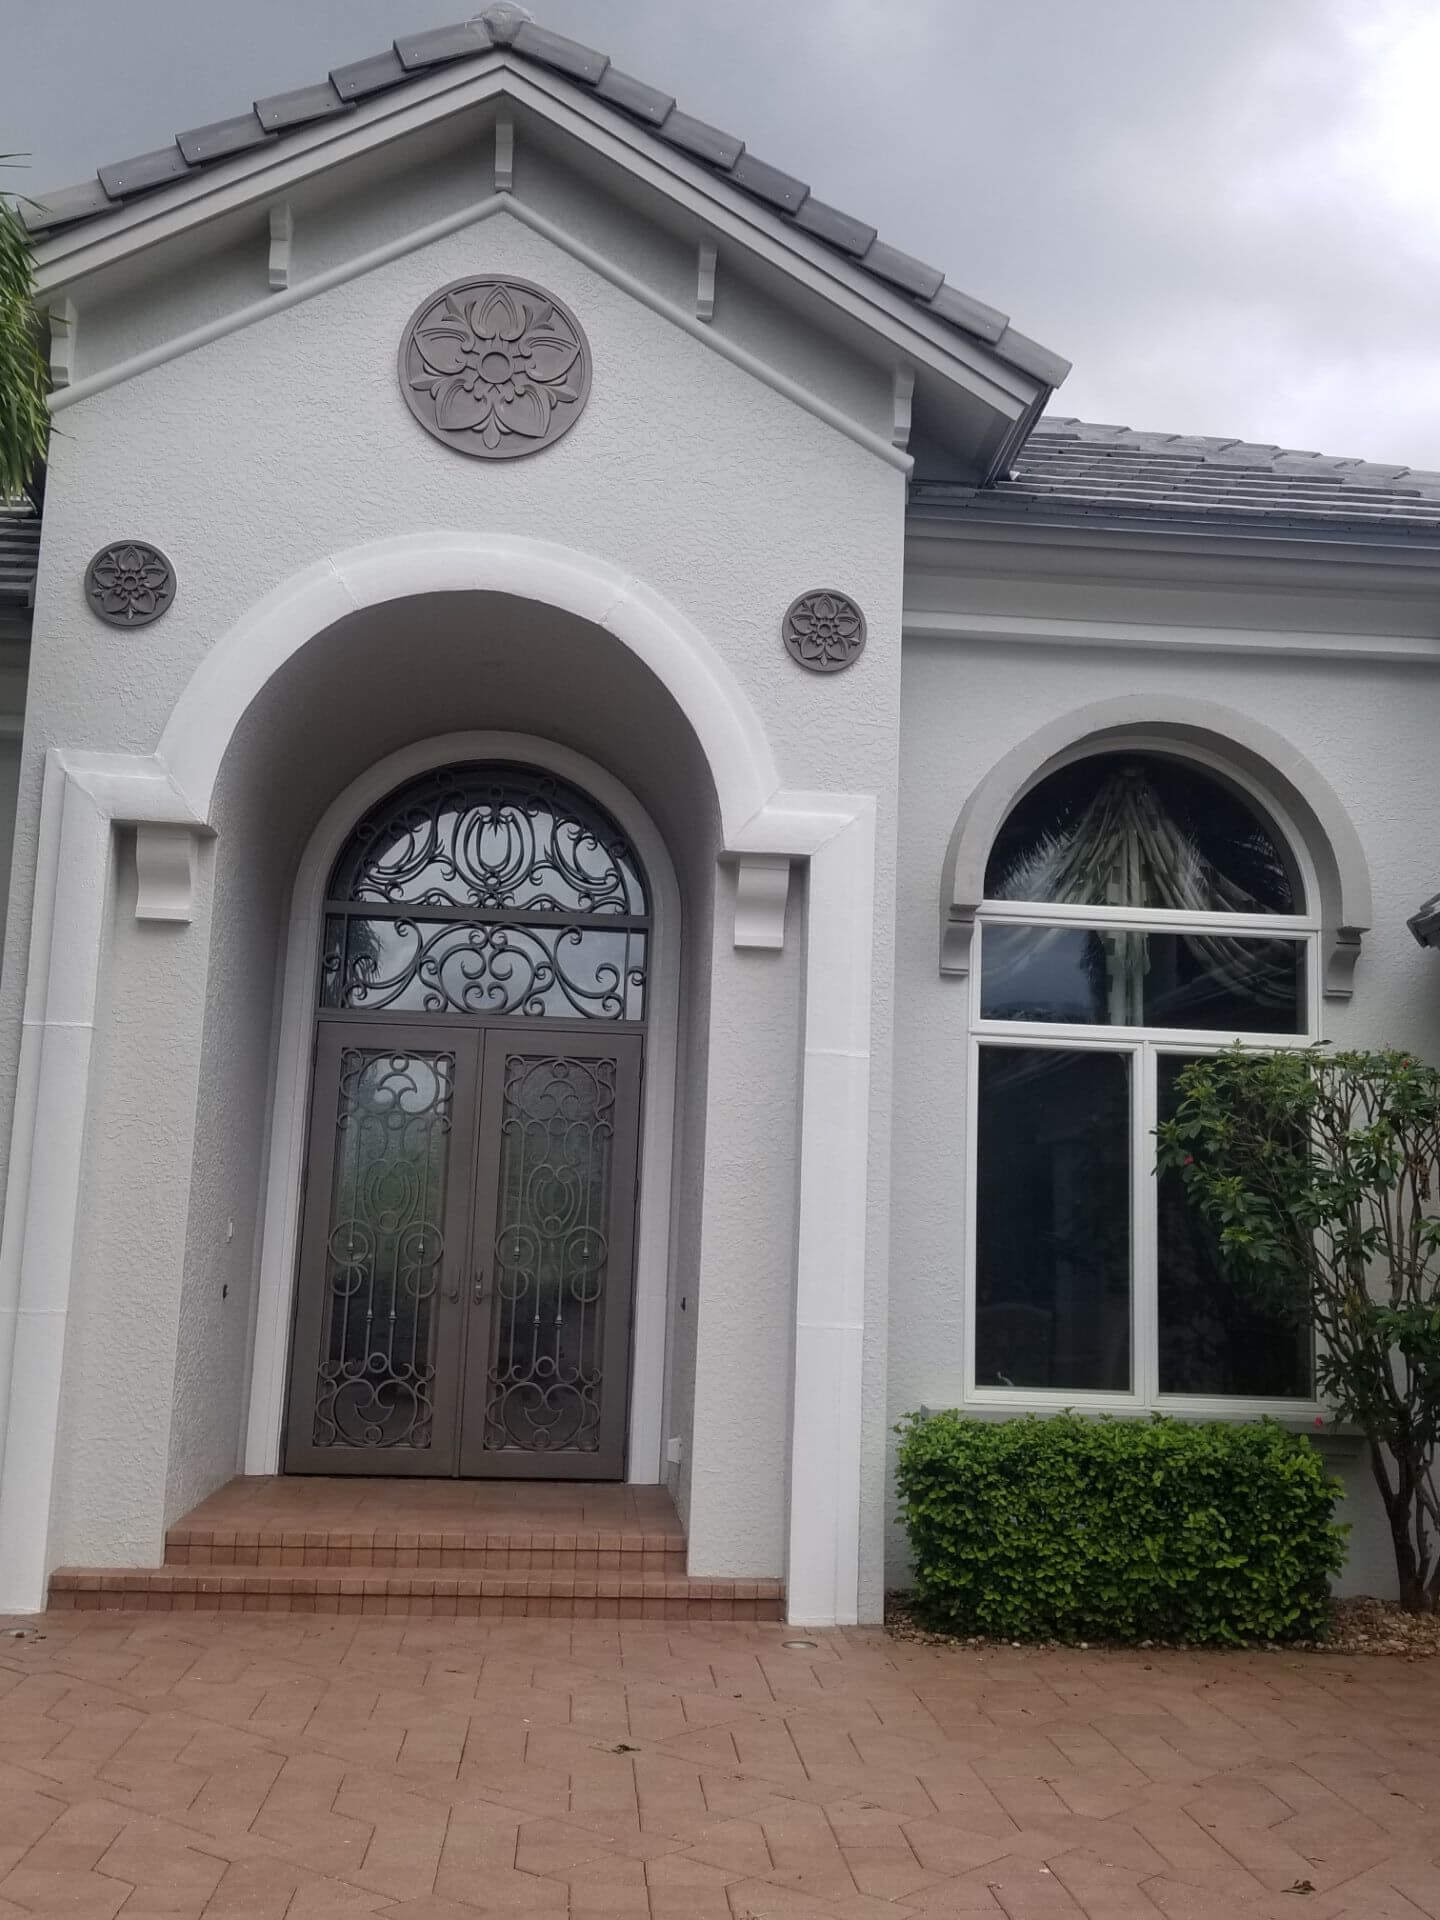 We not only painted the Cantera doors using metallic paint, we painted the 3 medallions with the same paint.